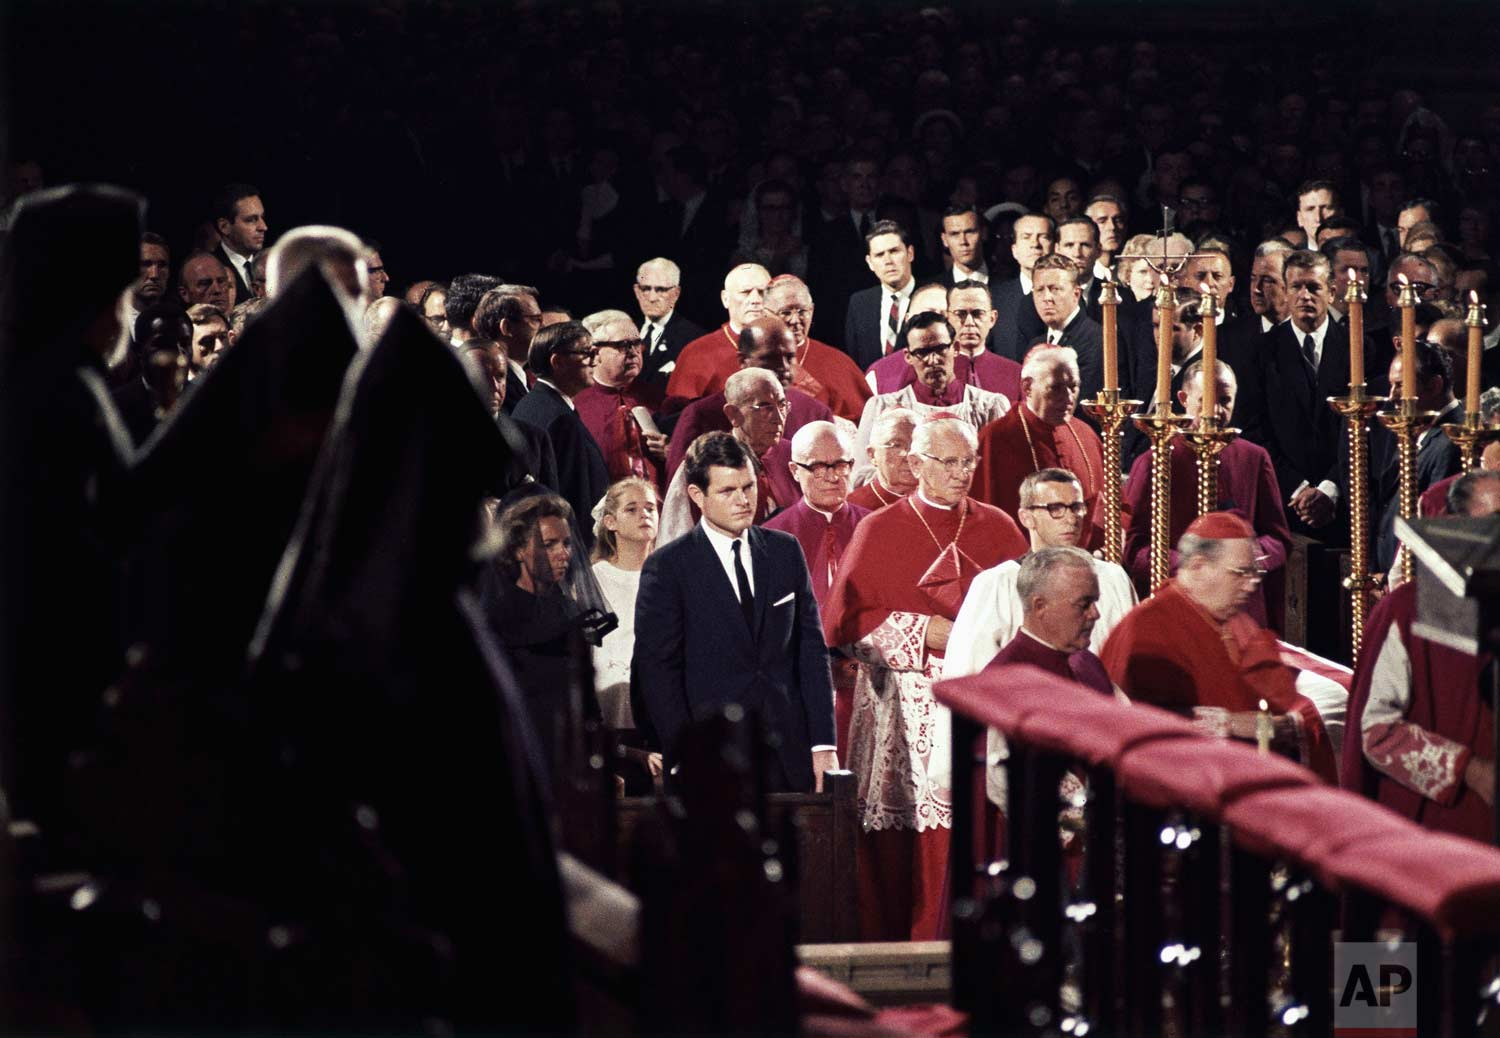 Edward M. Kennedy, center, stands with the widow of his brother, Robert F. Kennedy, during his funeral at St. Patrick's Cathedral in New York, June 8, 1968. (AP Photo)